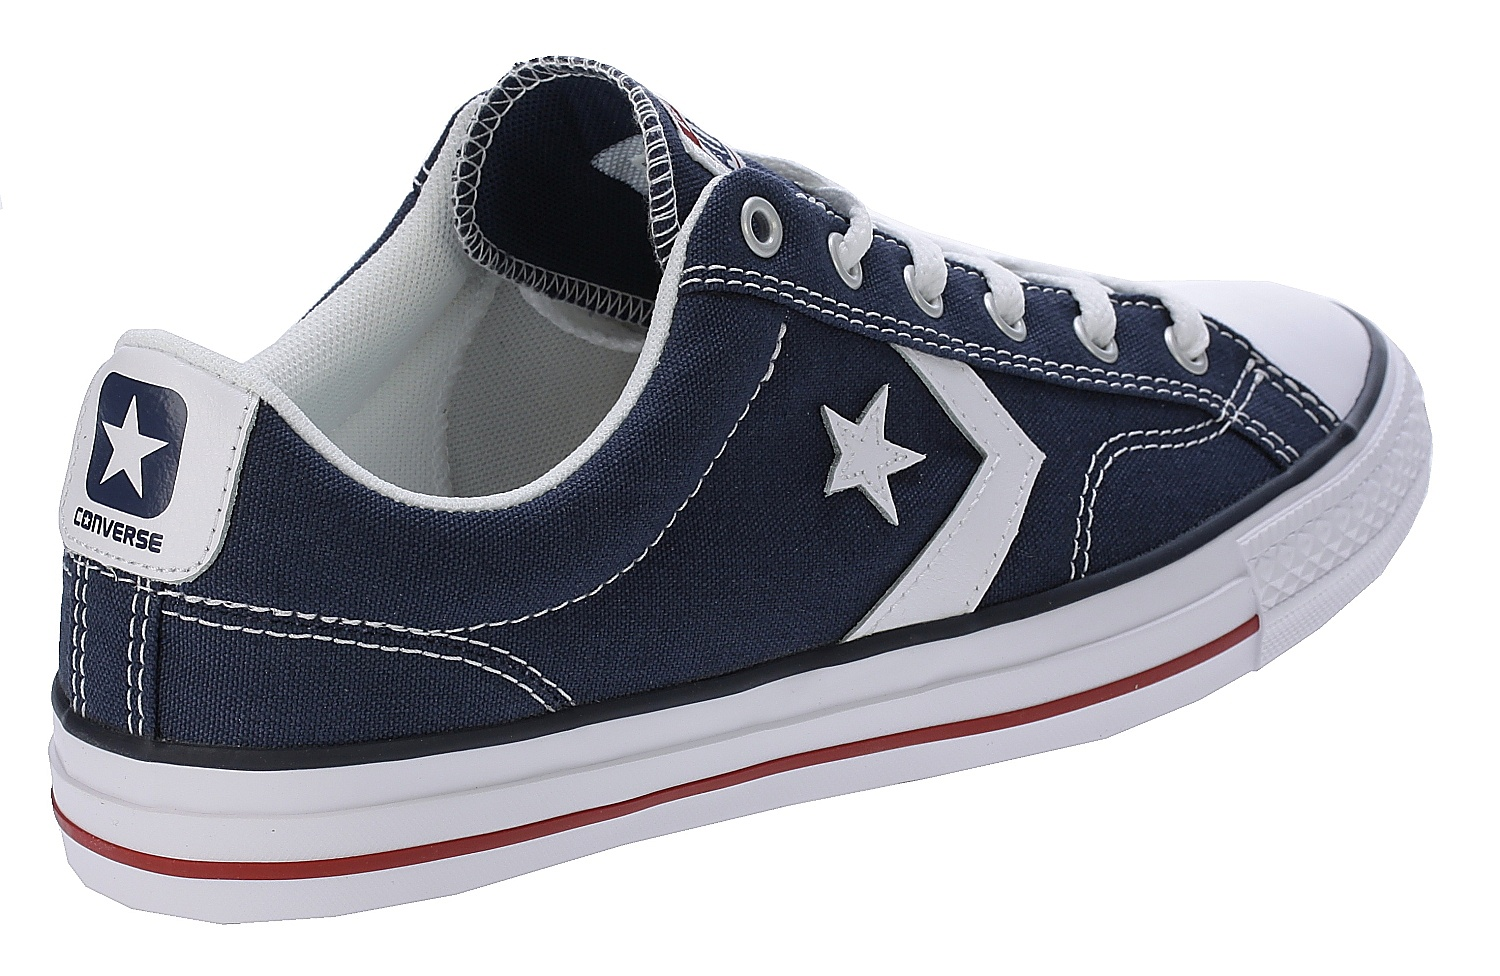 shoes Converse Star Player OX/144150 - Navy/White - Snowboard shop ...